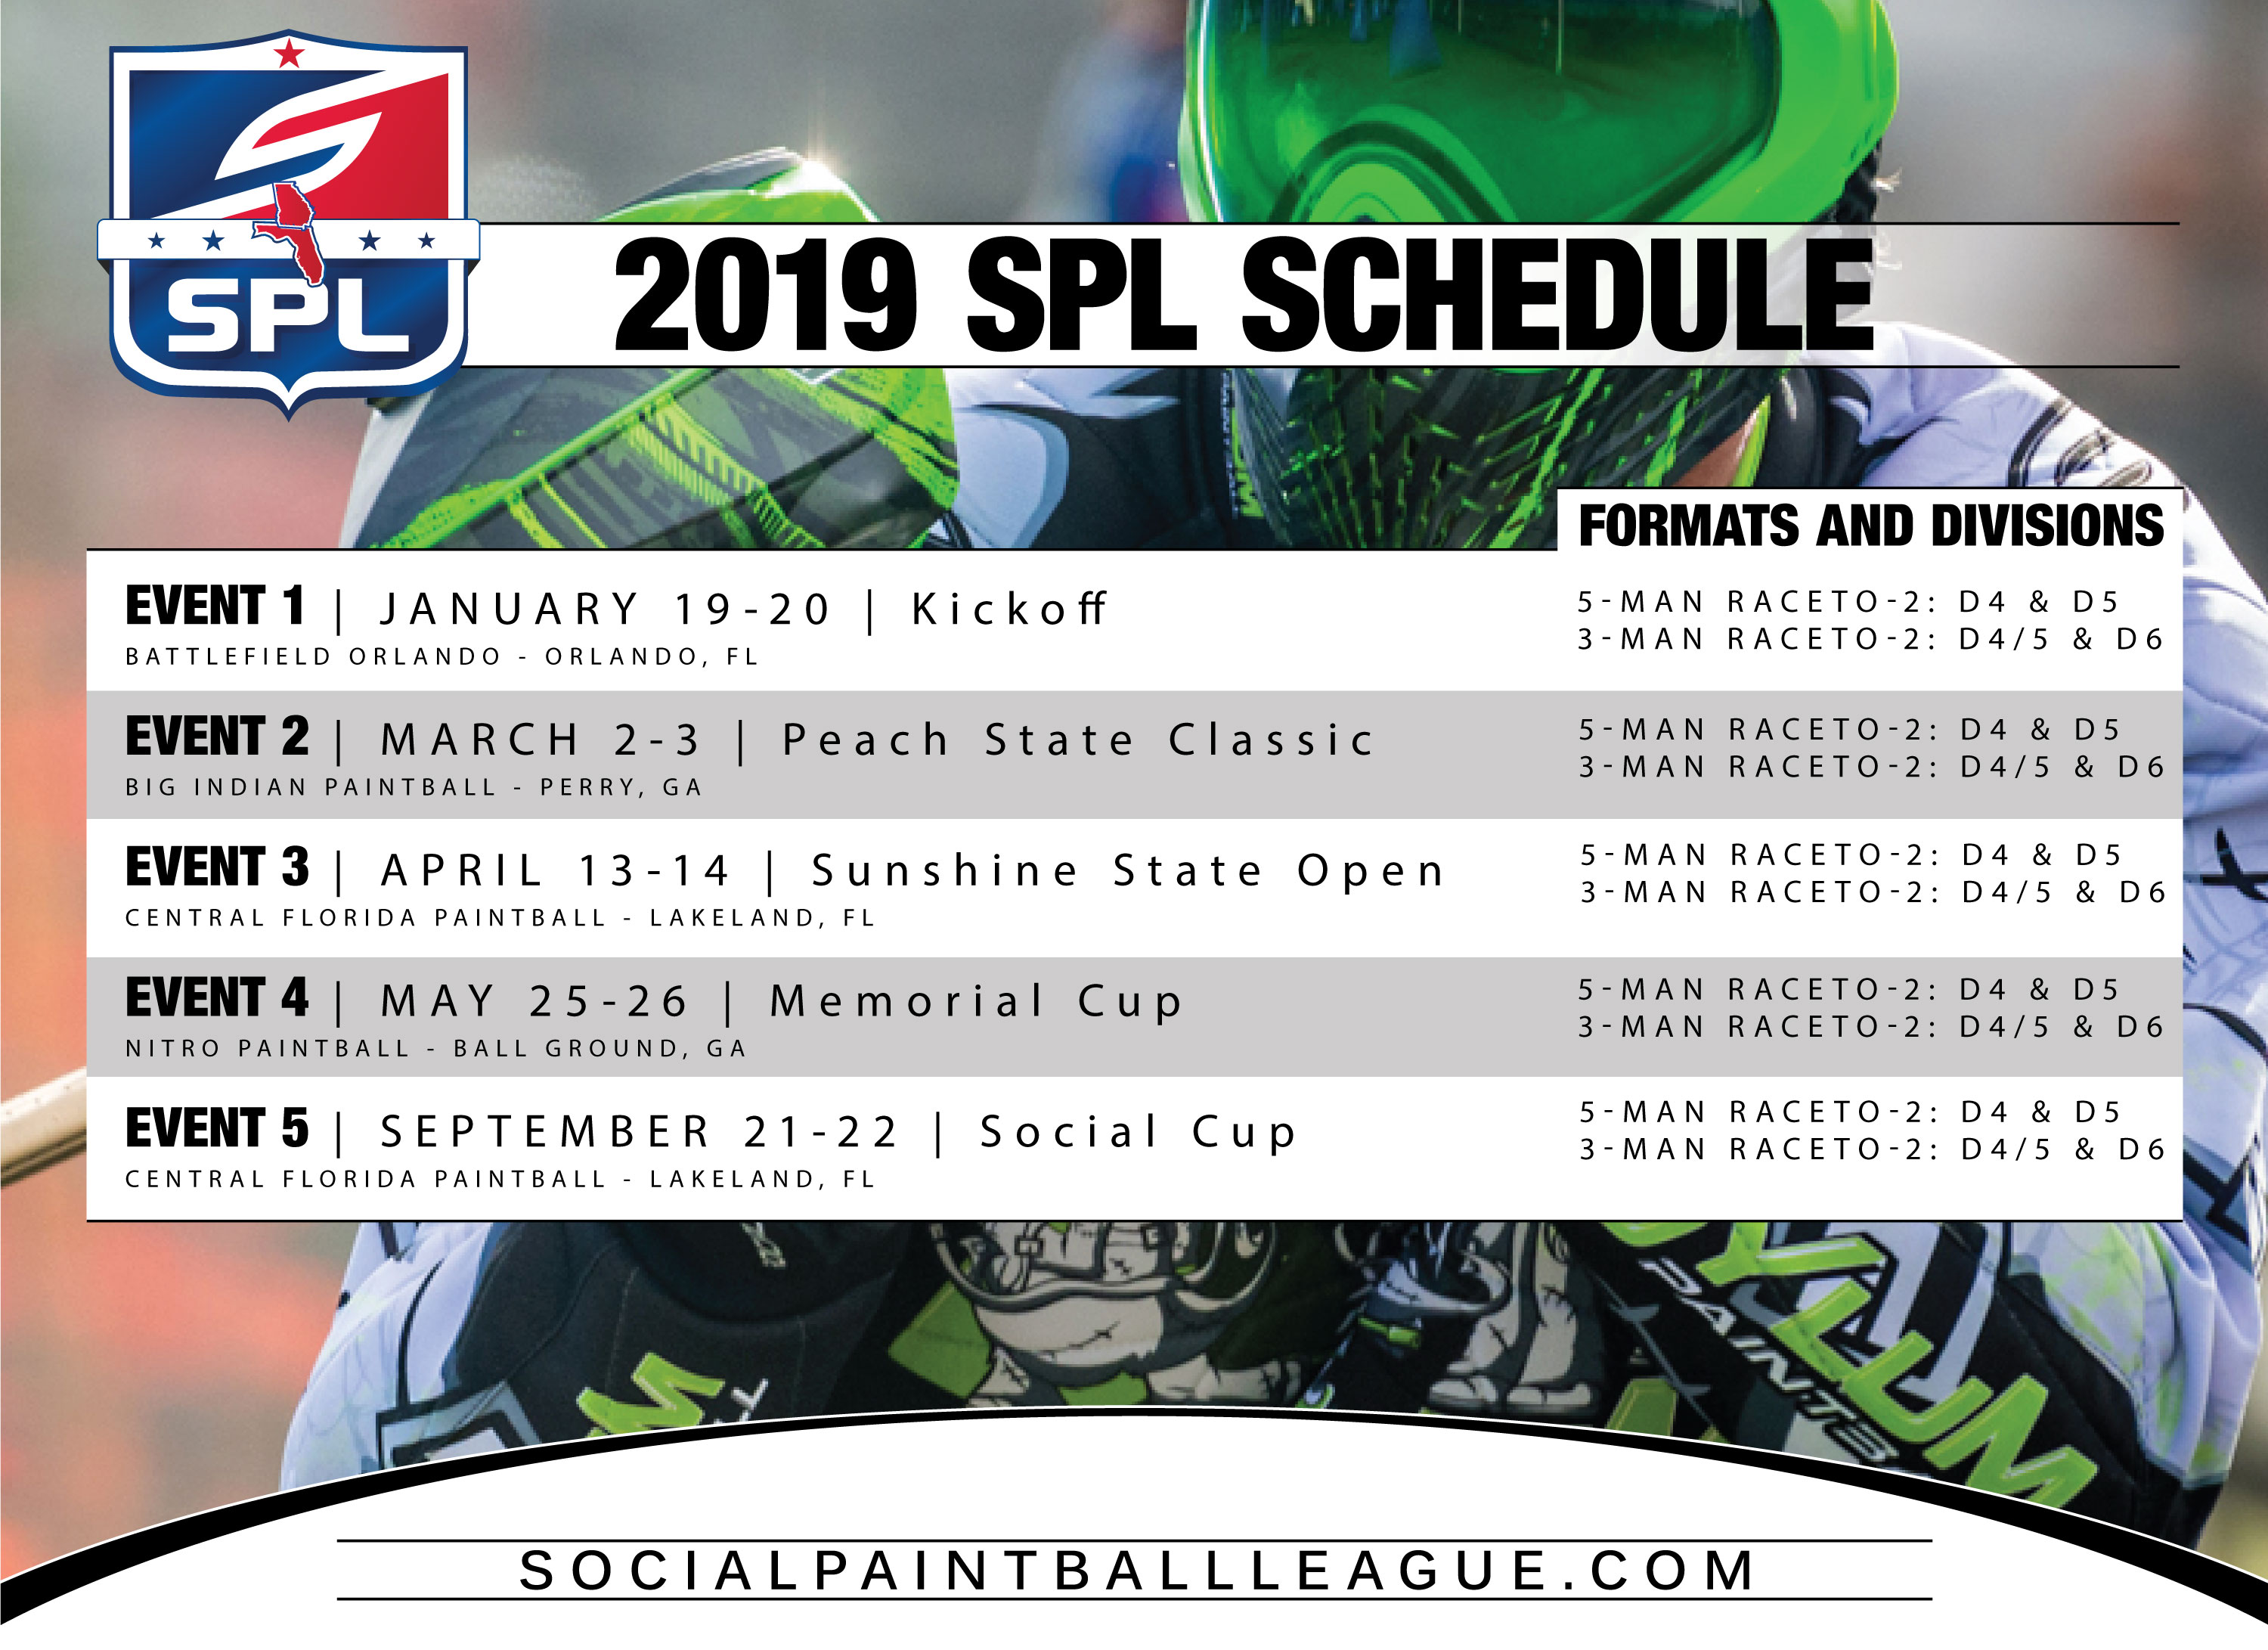 Florida Calendar Of Events 2019 SPL Events Calendar | SPL Florida & Georgia Paintball